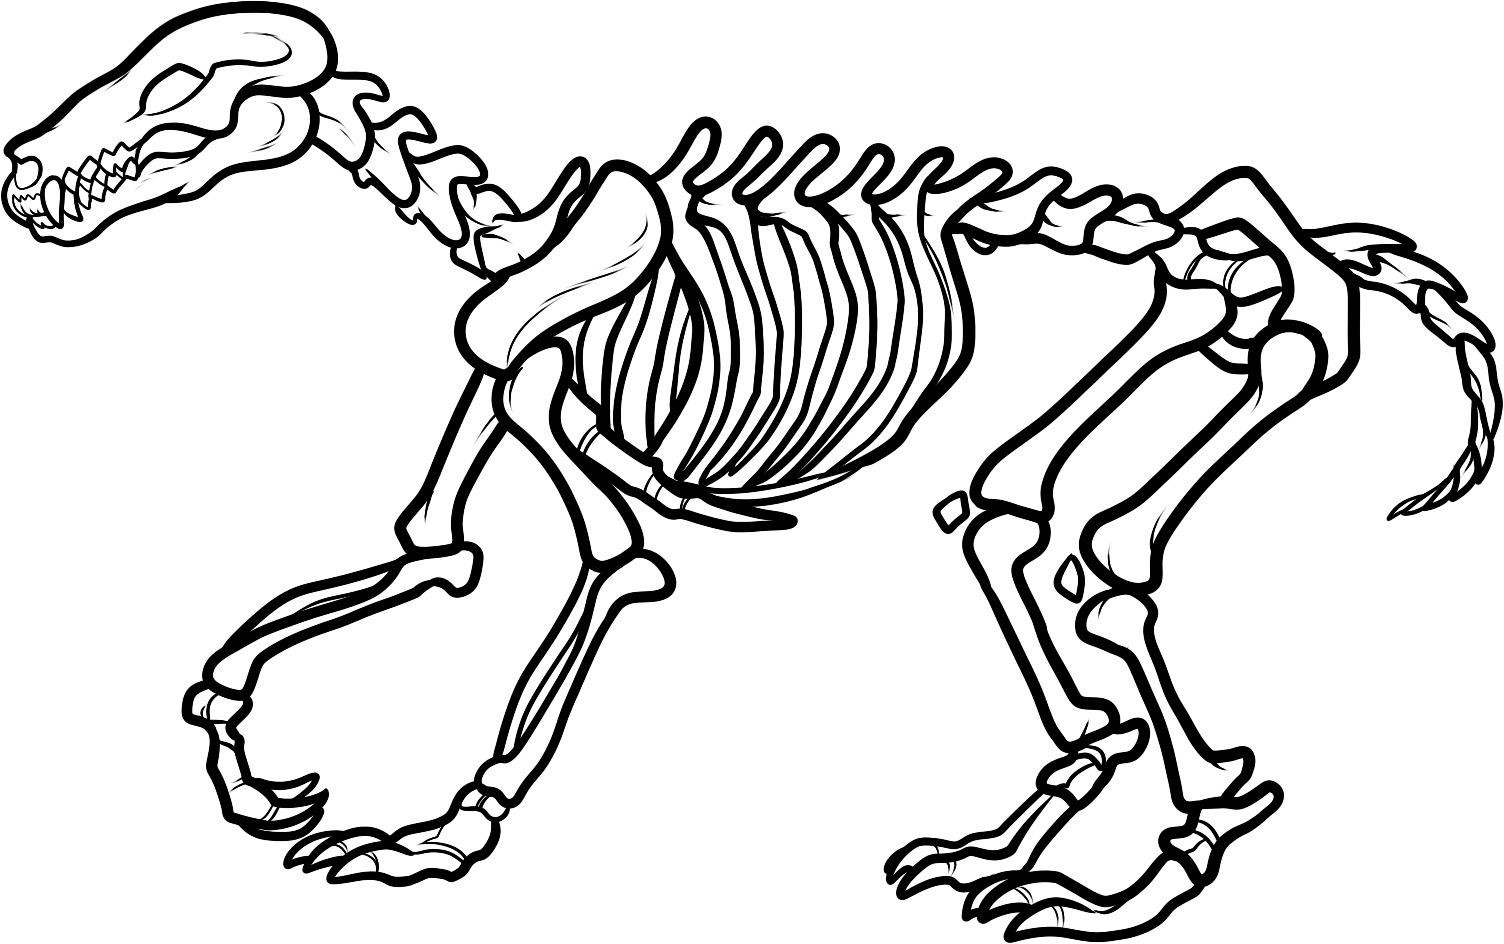 Fossil clipart black and white.